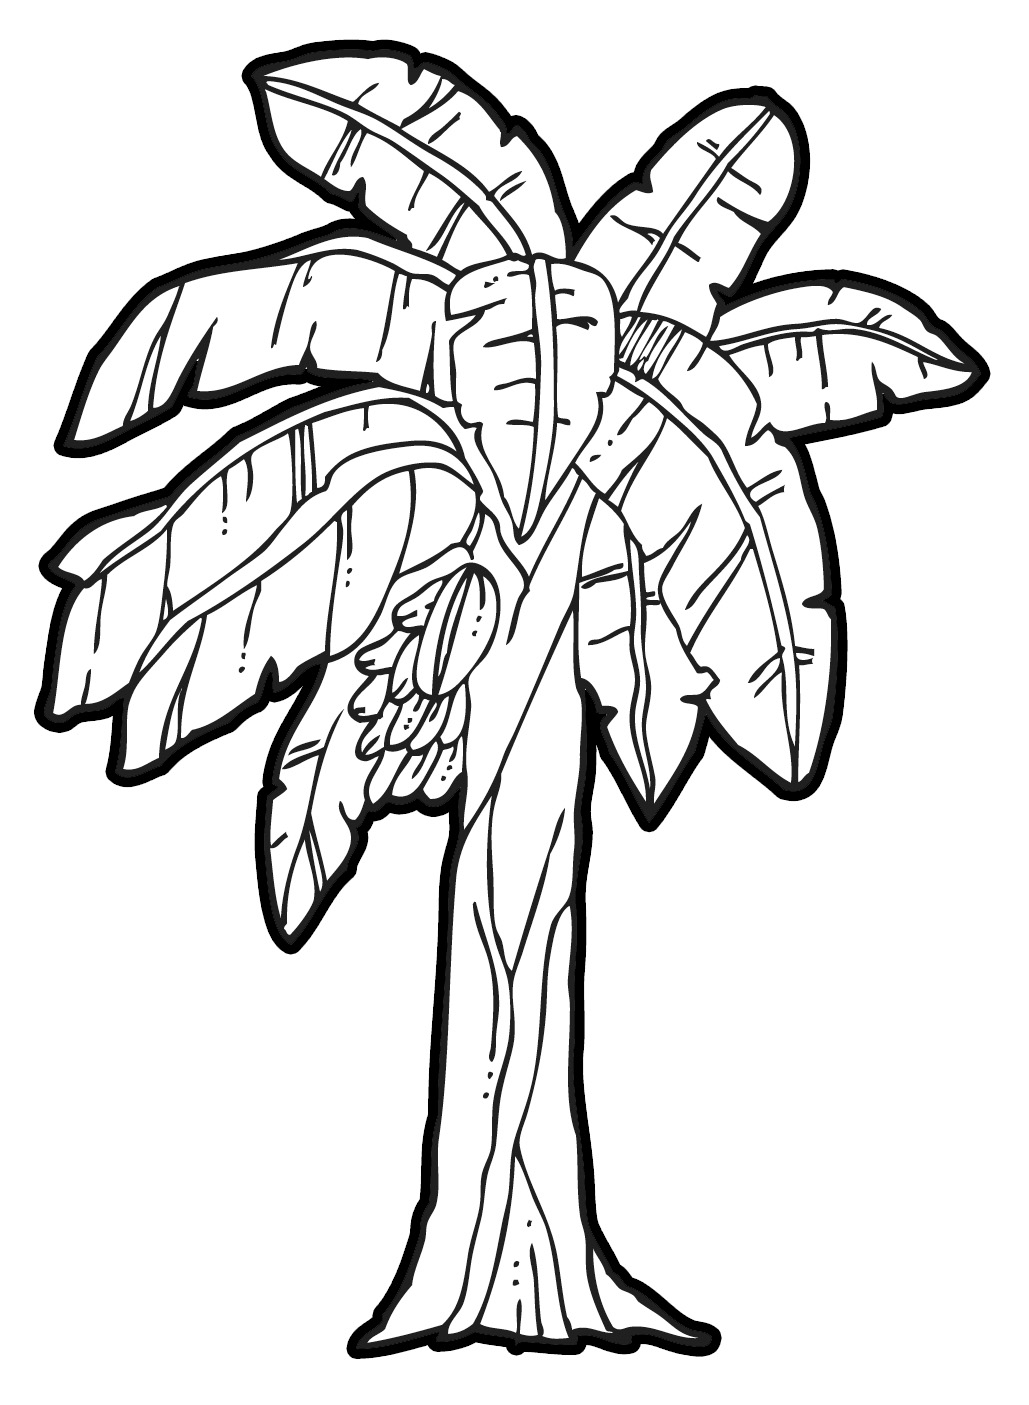 banana tree leaf colouring pages